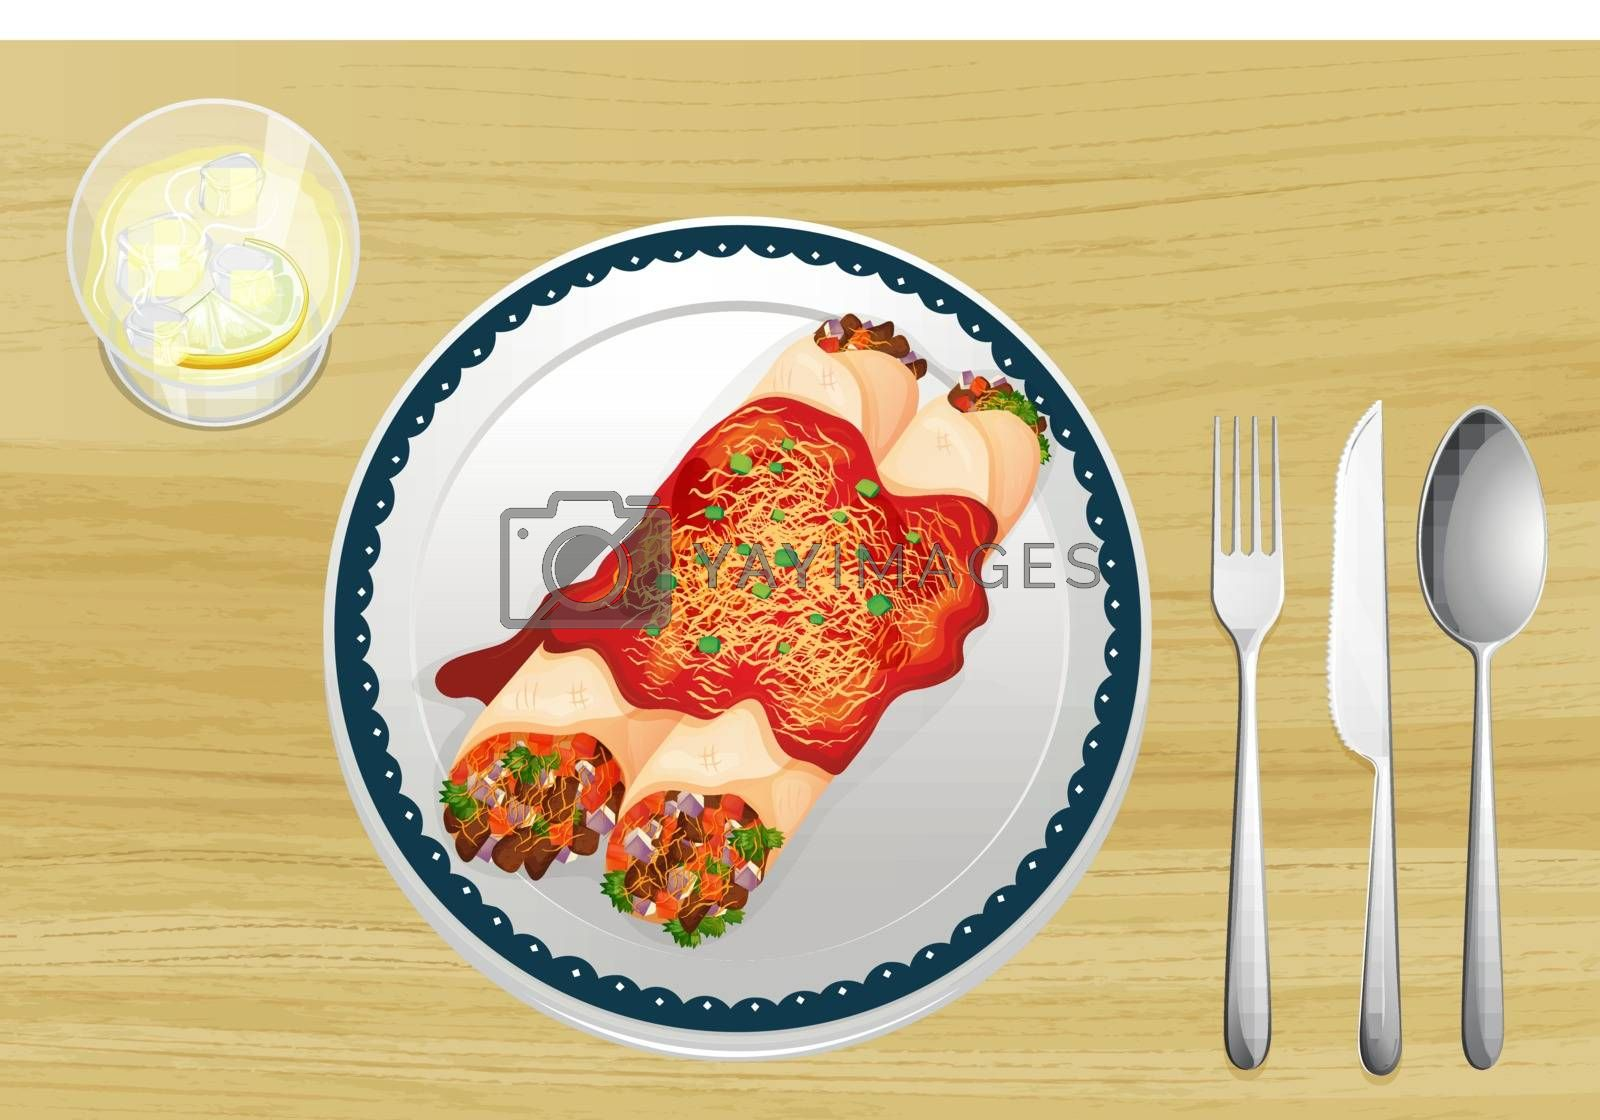 Illustration of a food in a dish on a wooden background